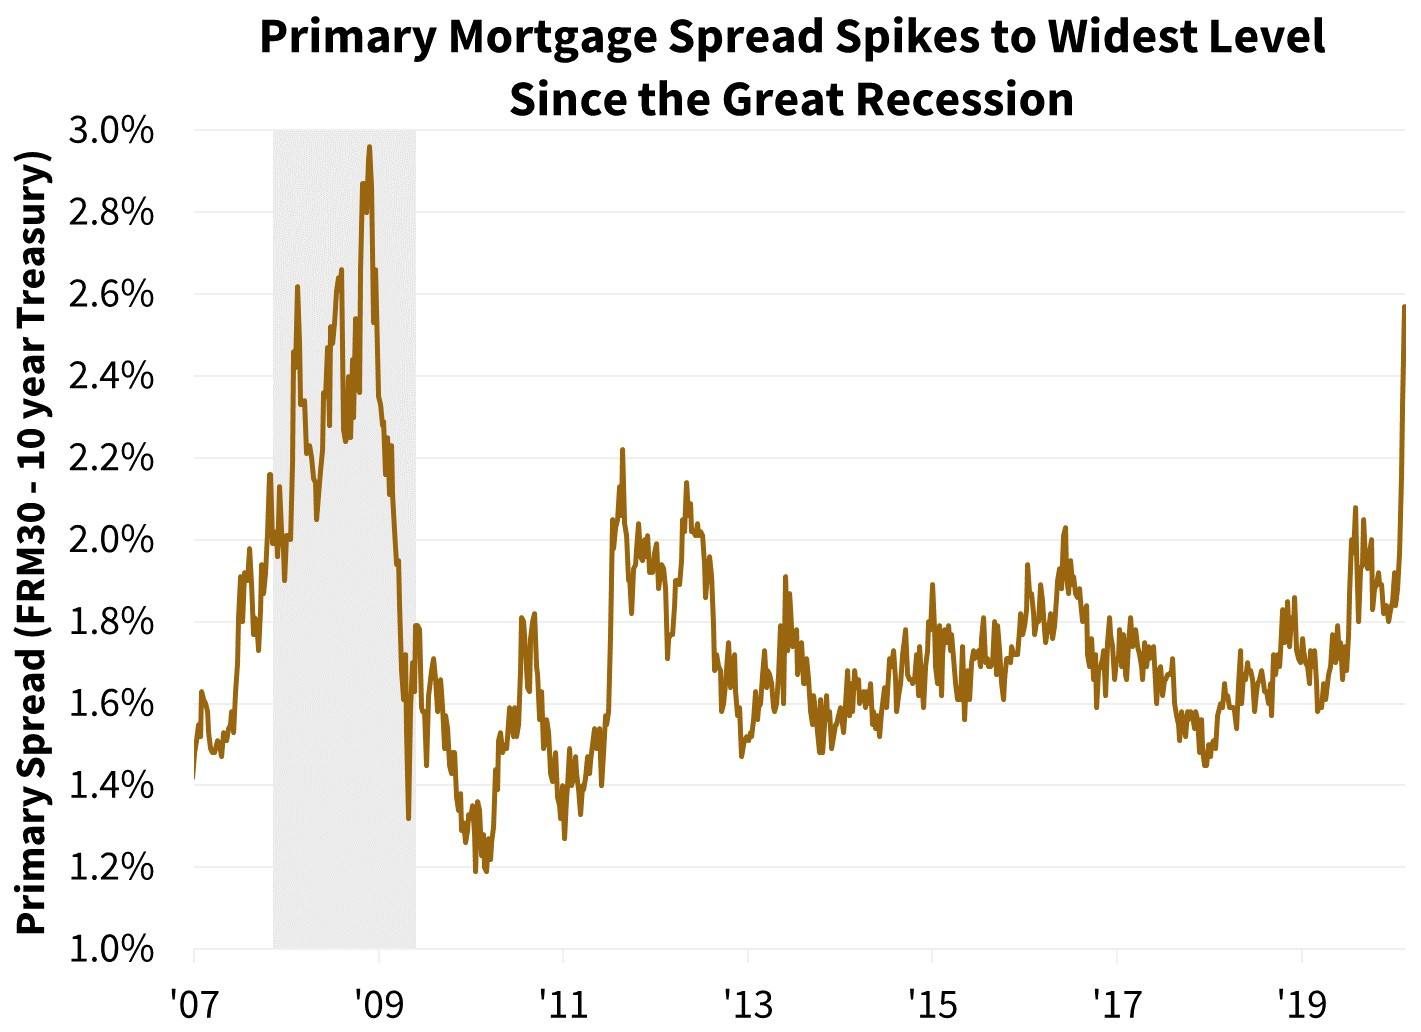 Primary Mortgage Spread Spikes to Widest Level Since the Great Recession